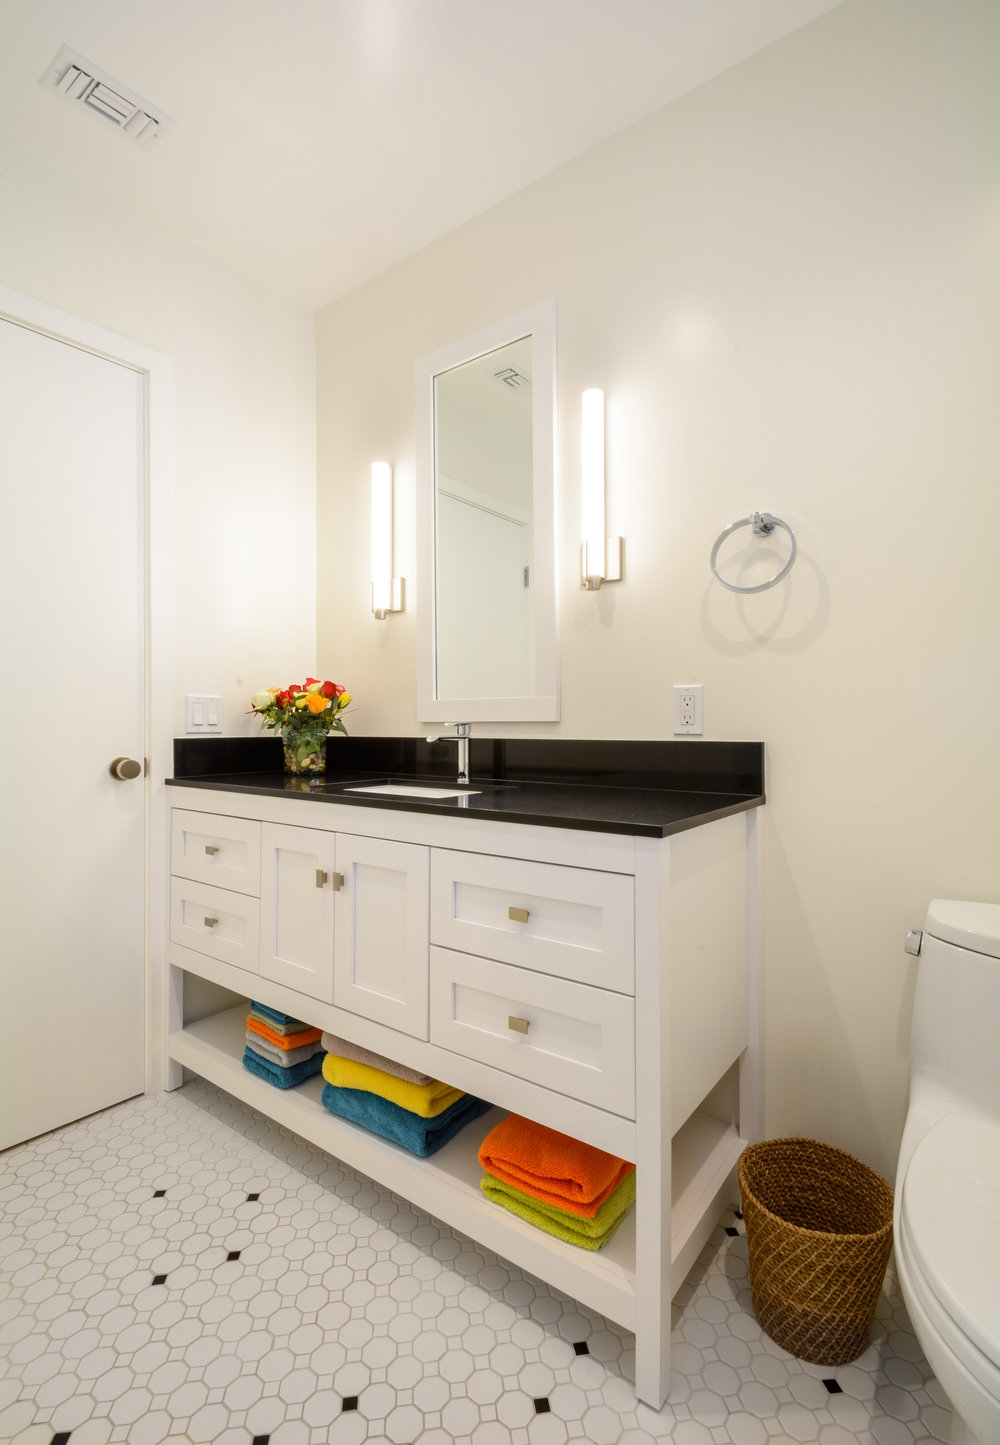 Bright white small guest bathroom with black accents.  The black accent dots on the white tile floor are designed to mimic the constellations in the Northern Sky